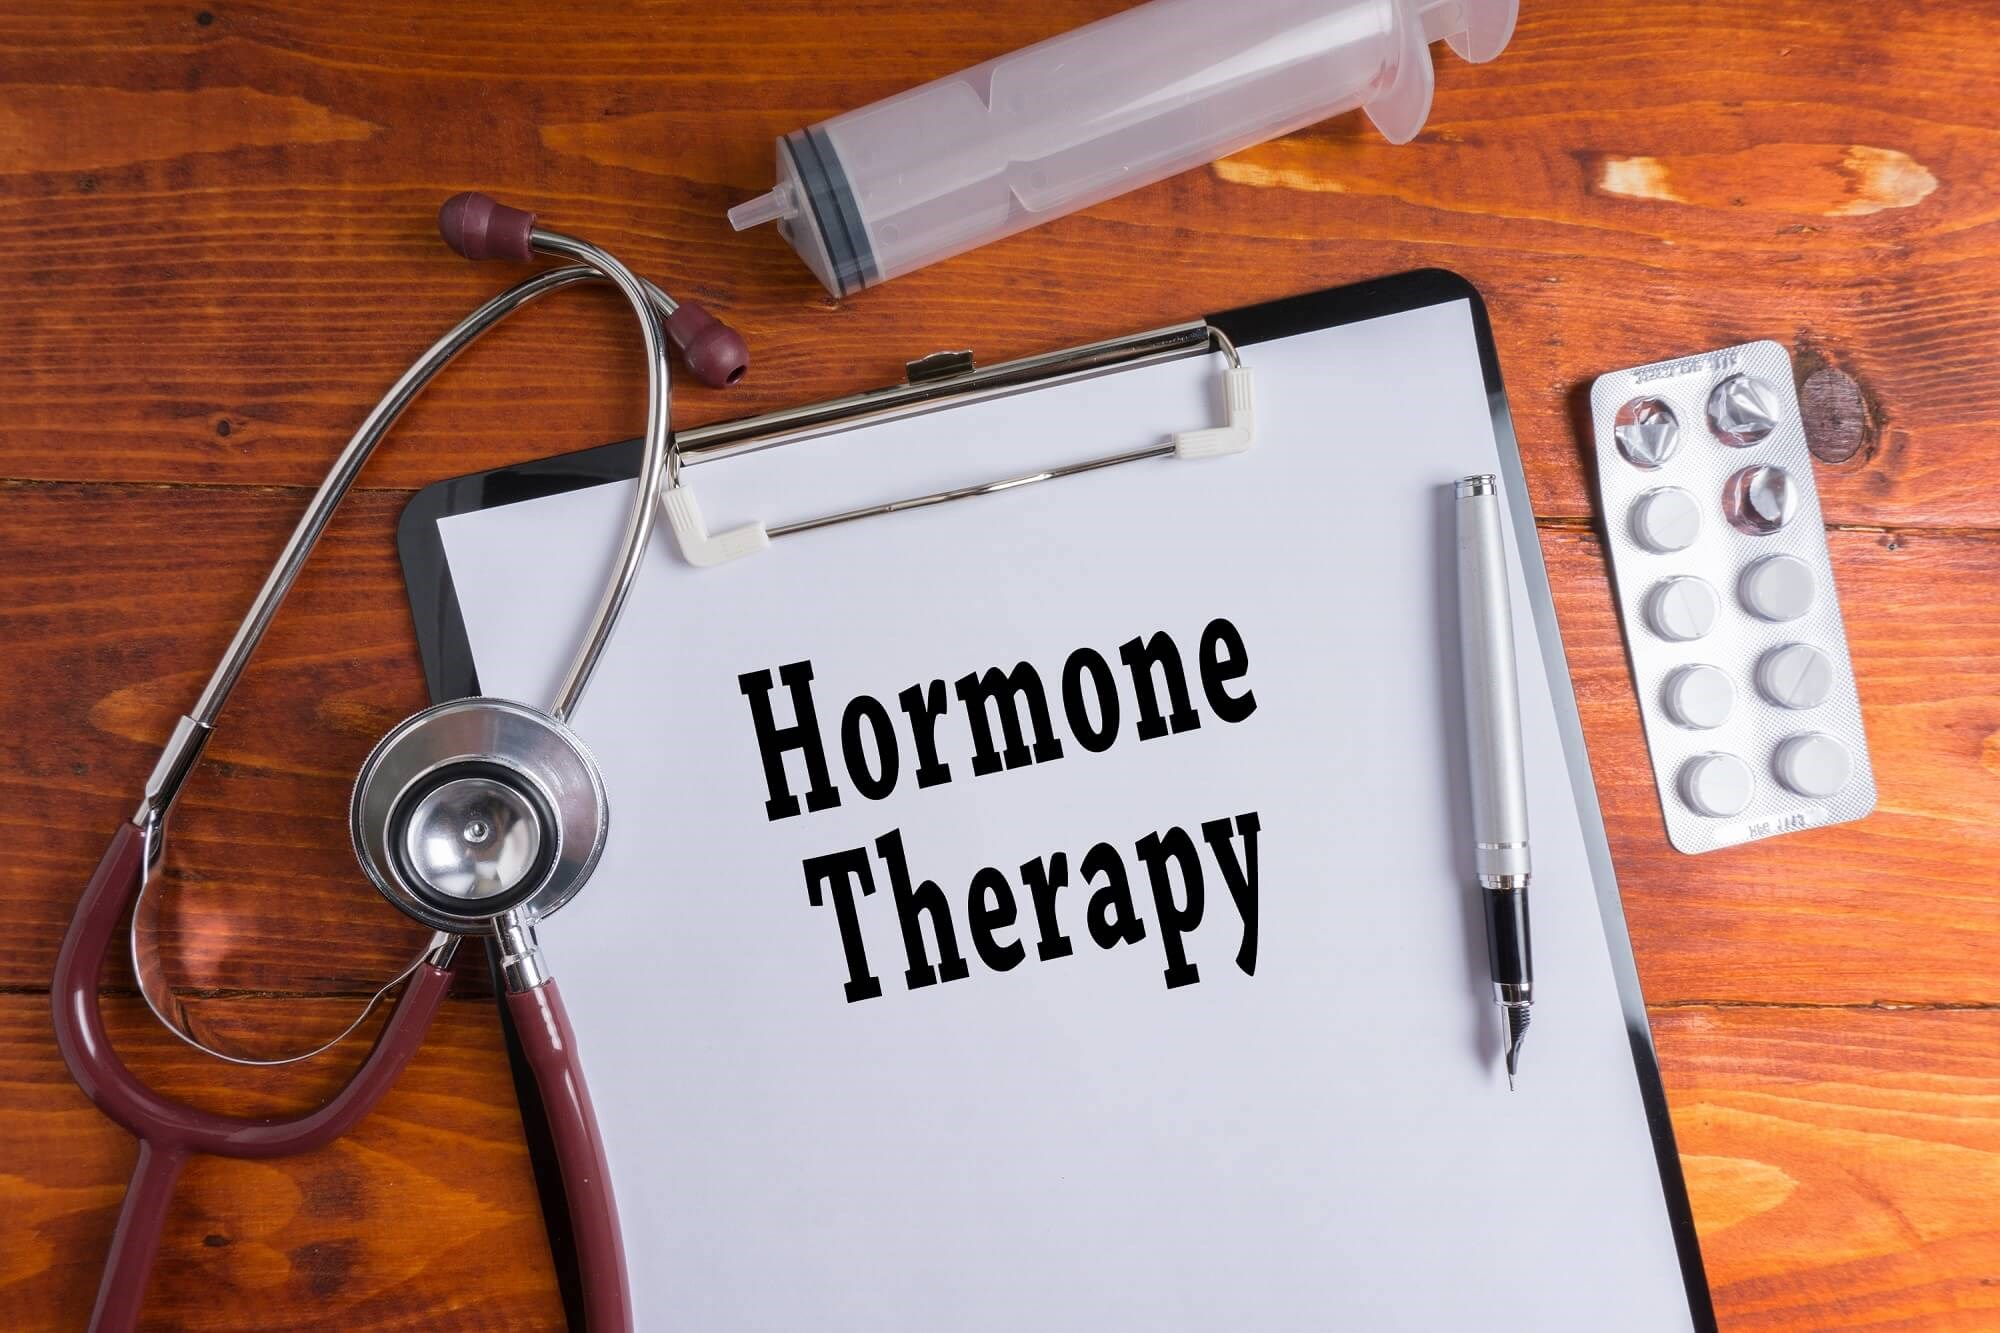 Researchers examined the cardiovascular effects of gender-affirming hormone therapy in this large cohort of transgender individuals.